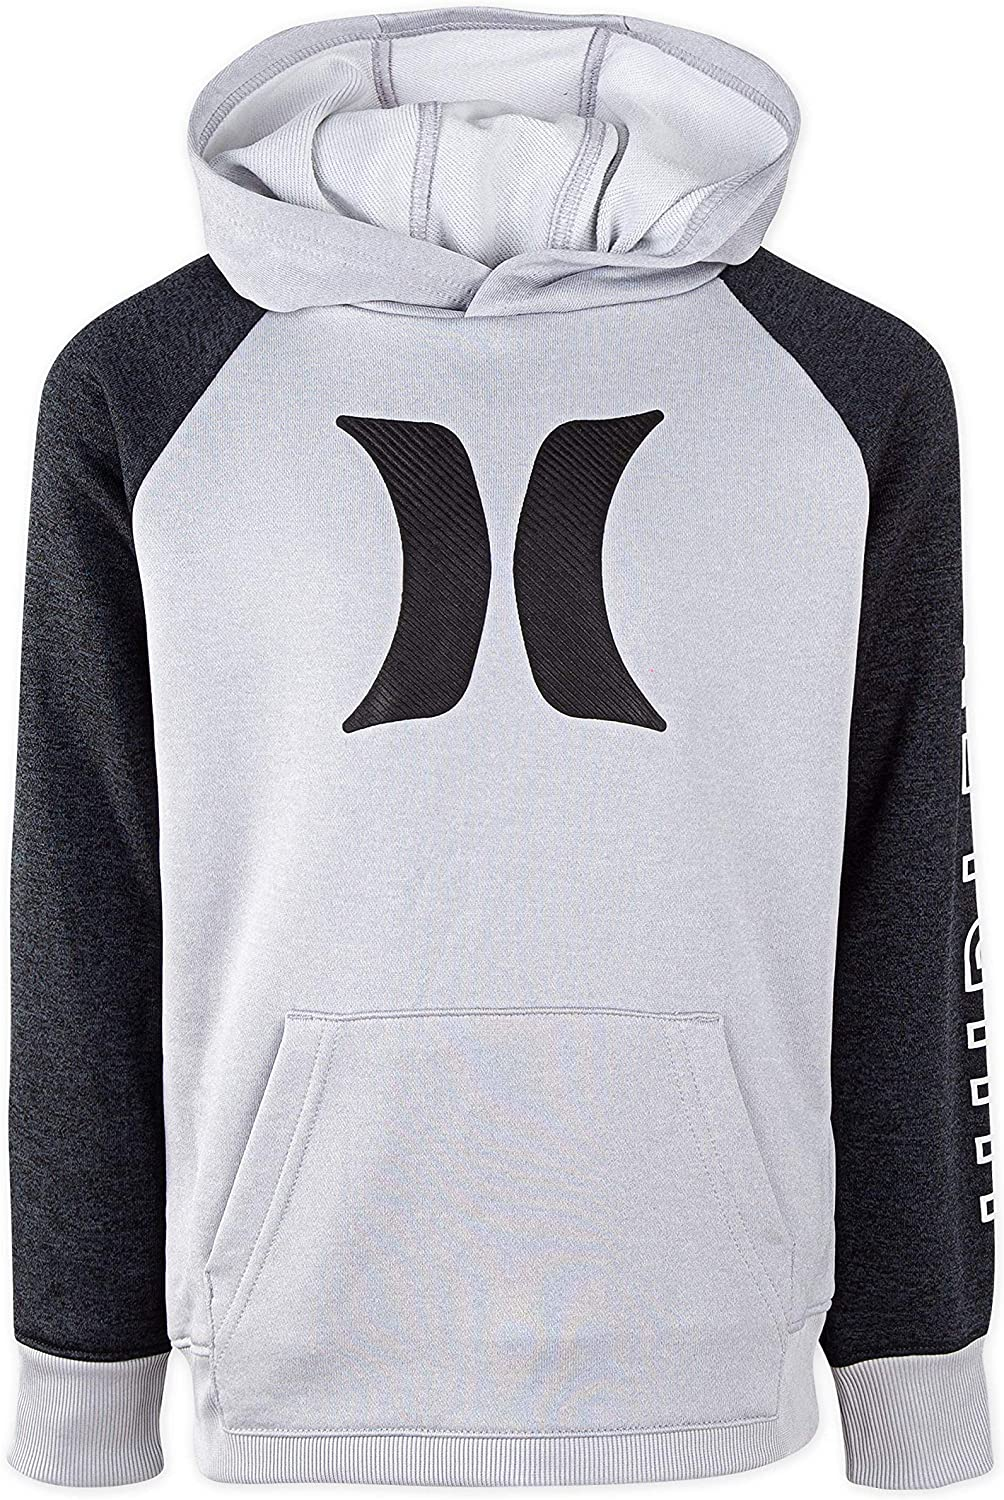 Hurley Boys' Little Solar Pullover Hoodie